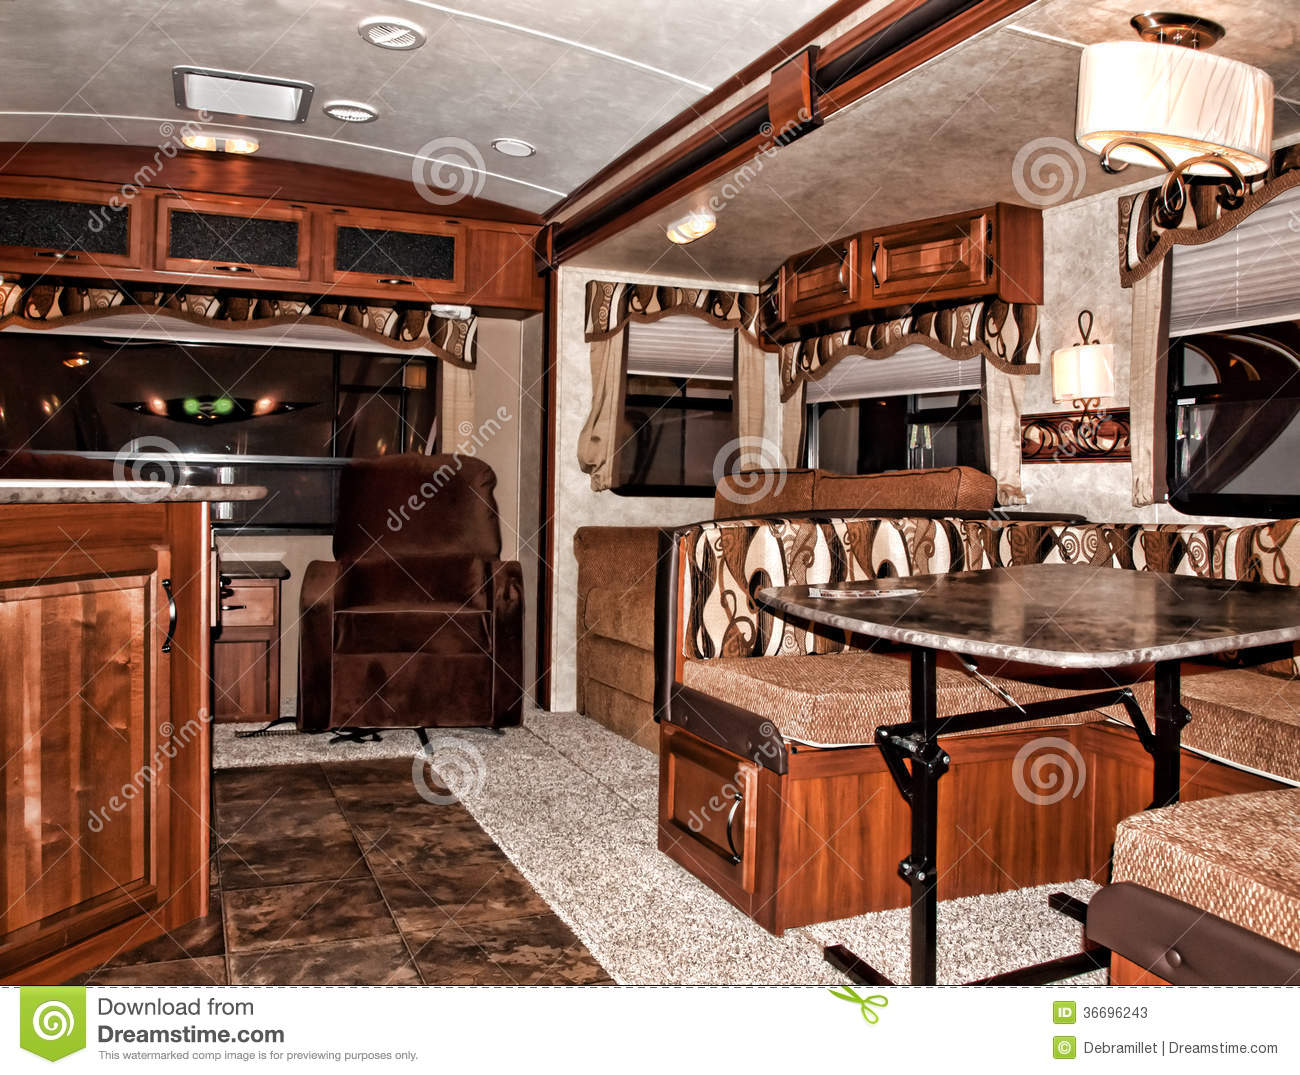 Recreational Vehicle Interior Stock Photos Image 36696243